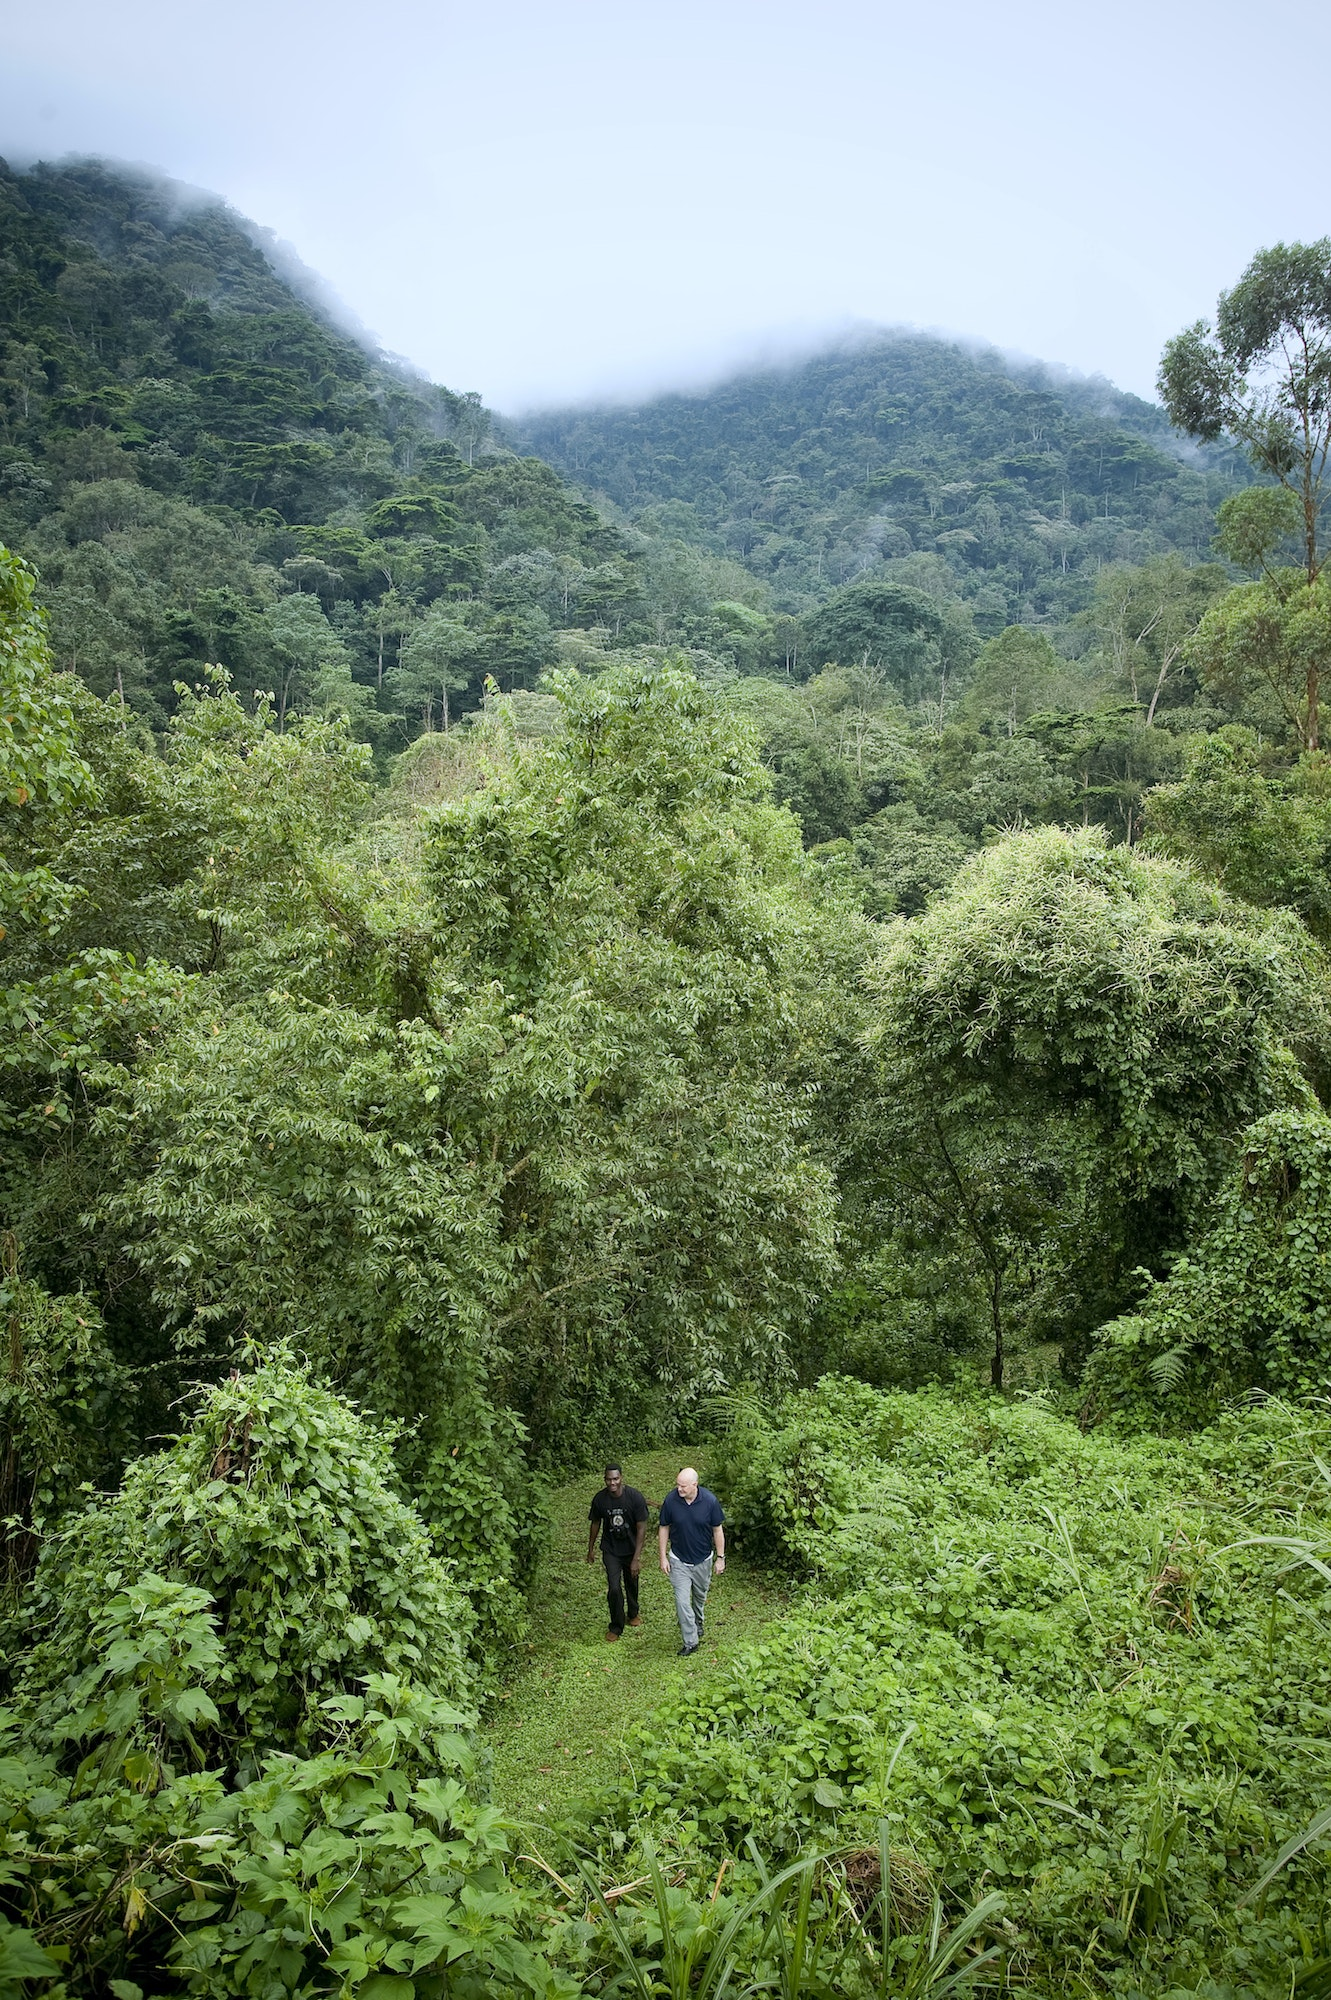 Patrick Otim and Patrick Symmes take a stroll in Bwindi Impenetrable National Park.